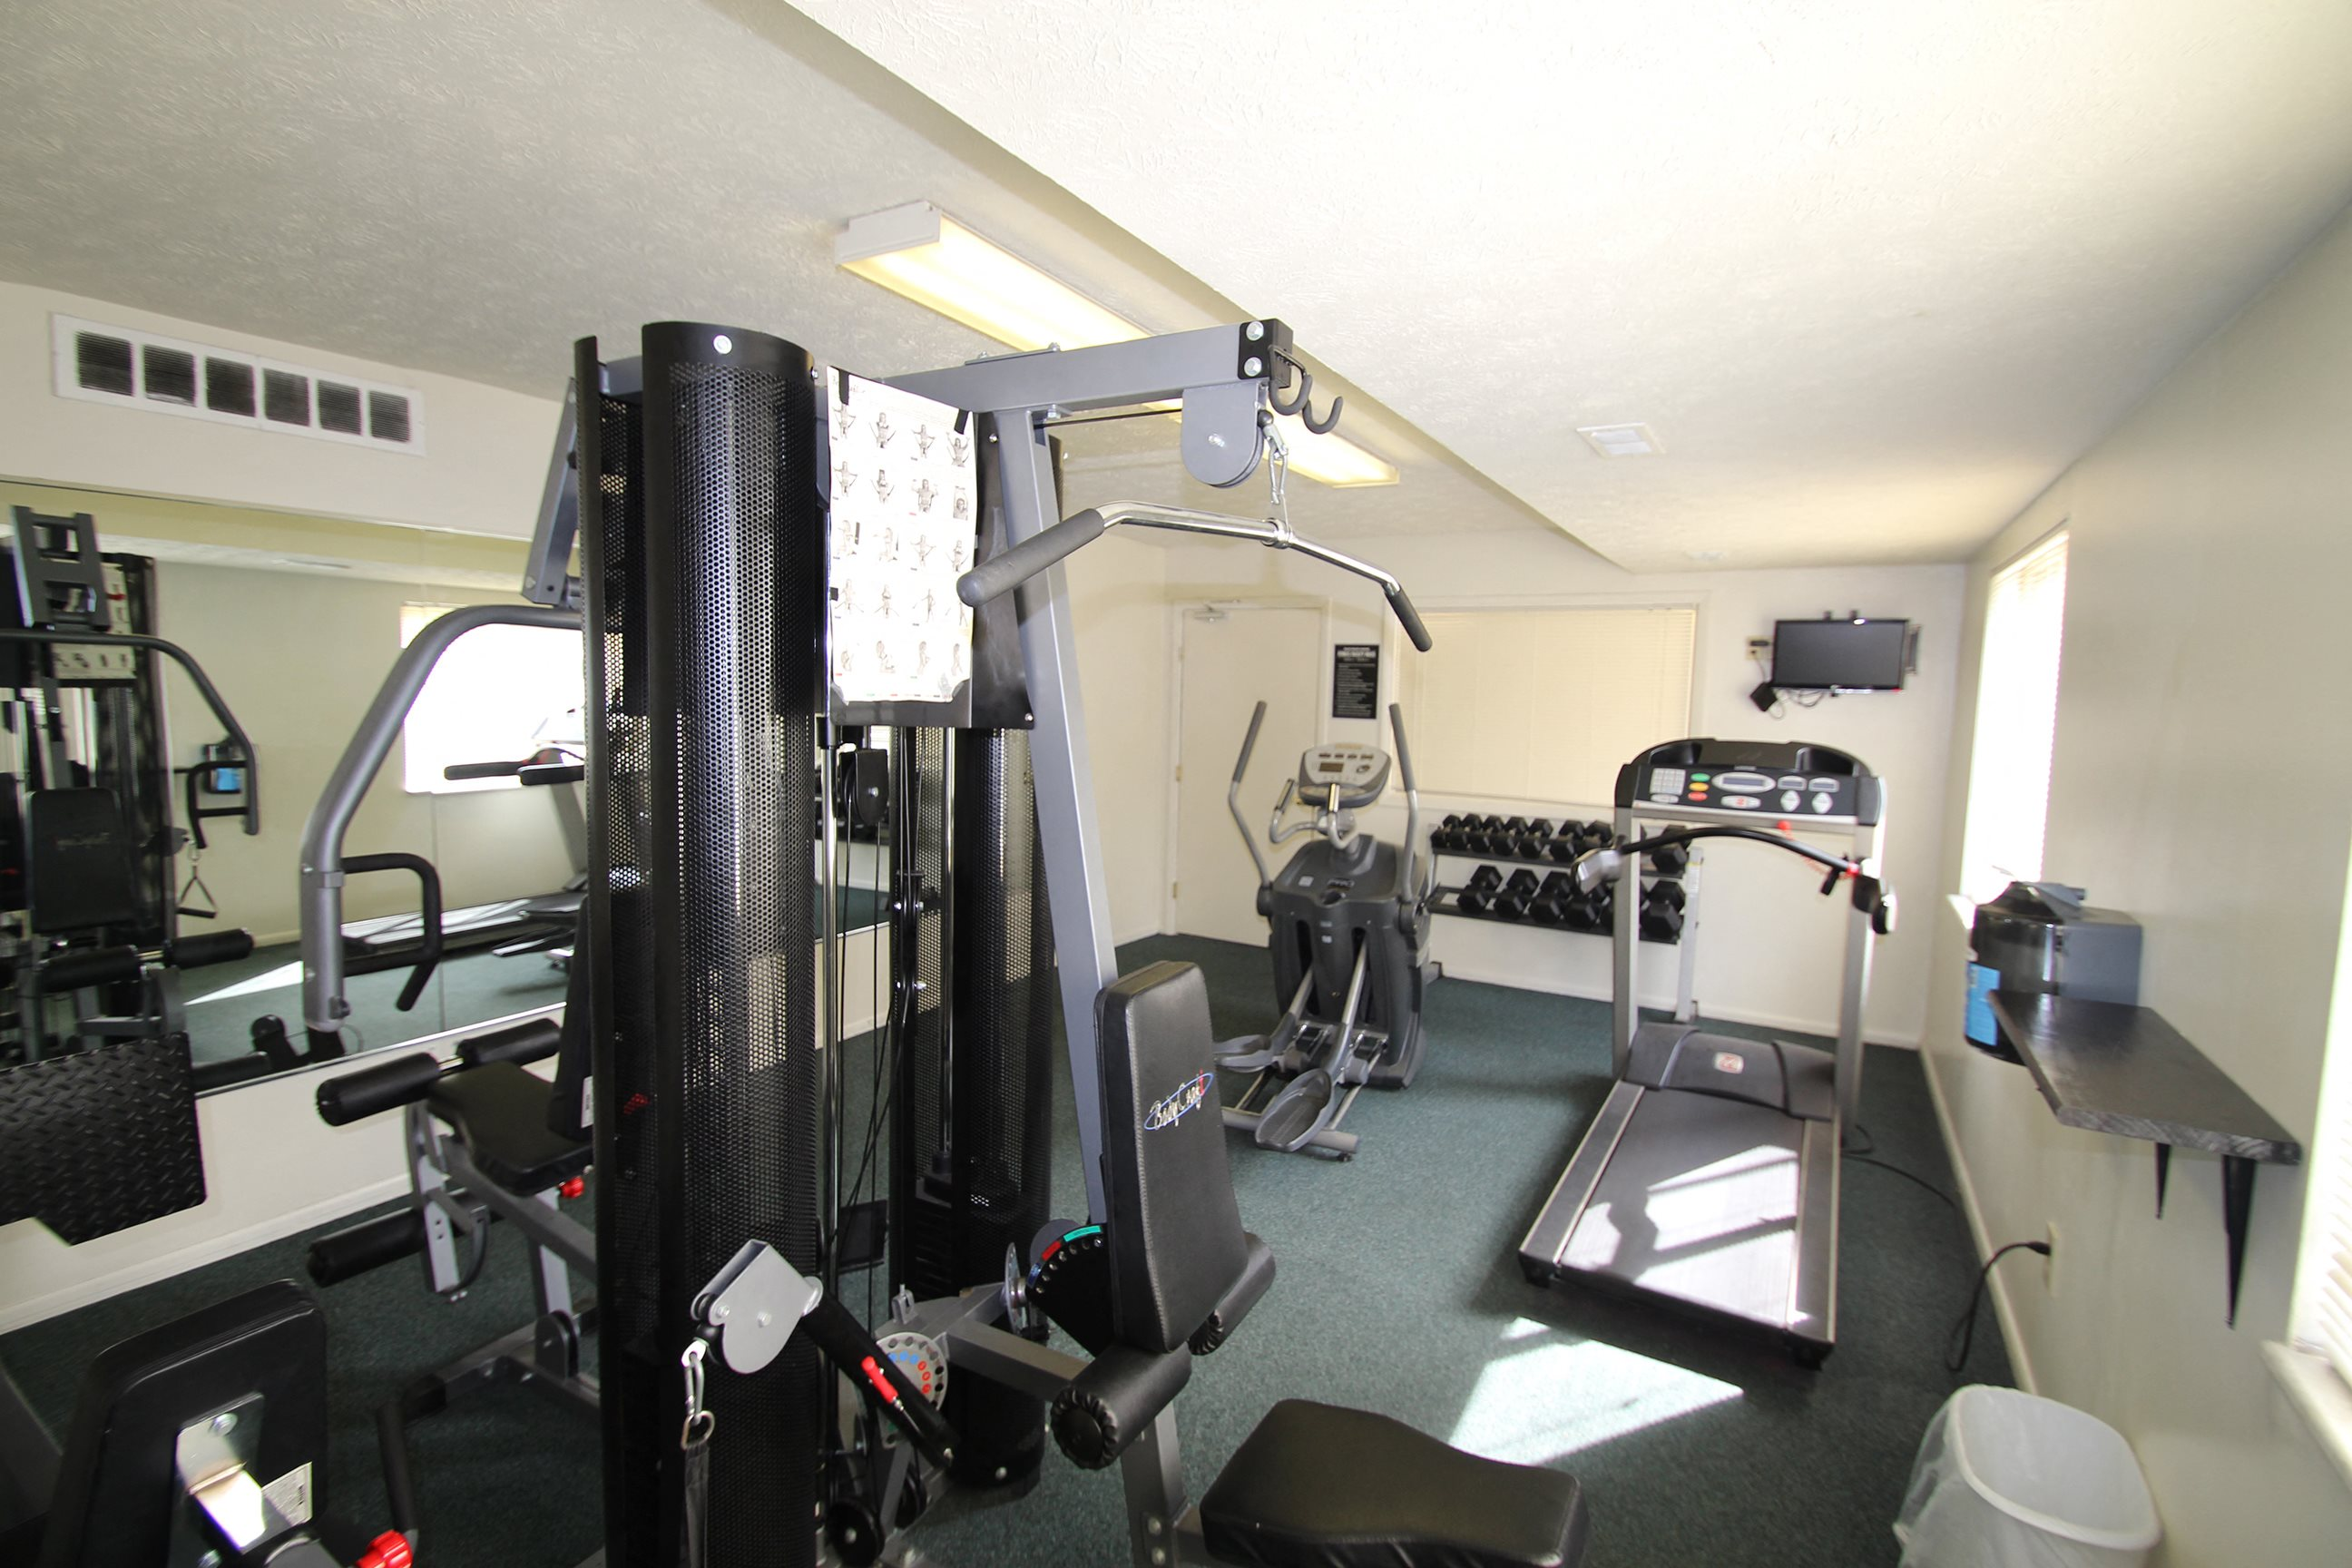 This is the fitness center at The Blue Grass Manor in Erlanger, KY